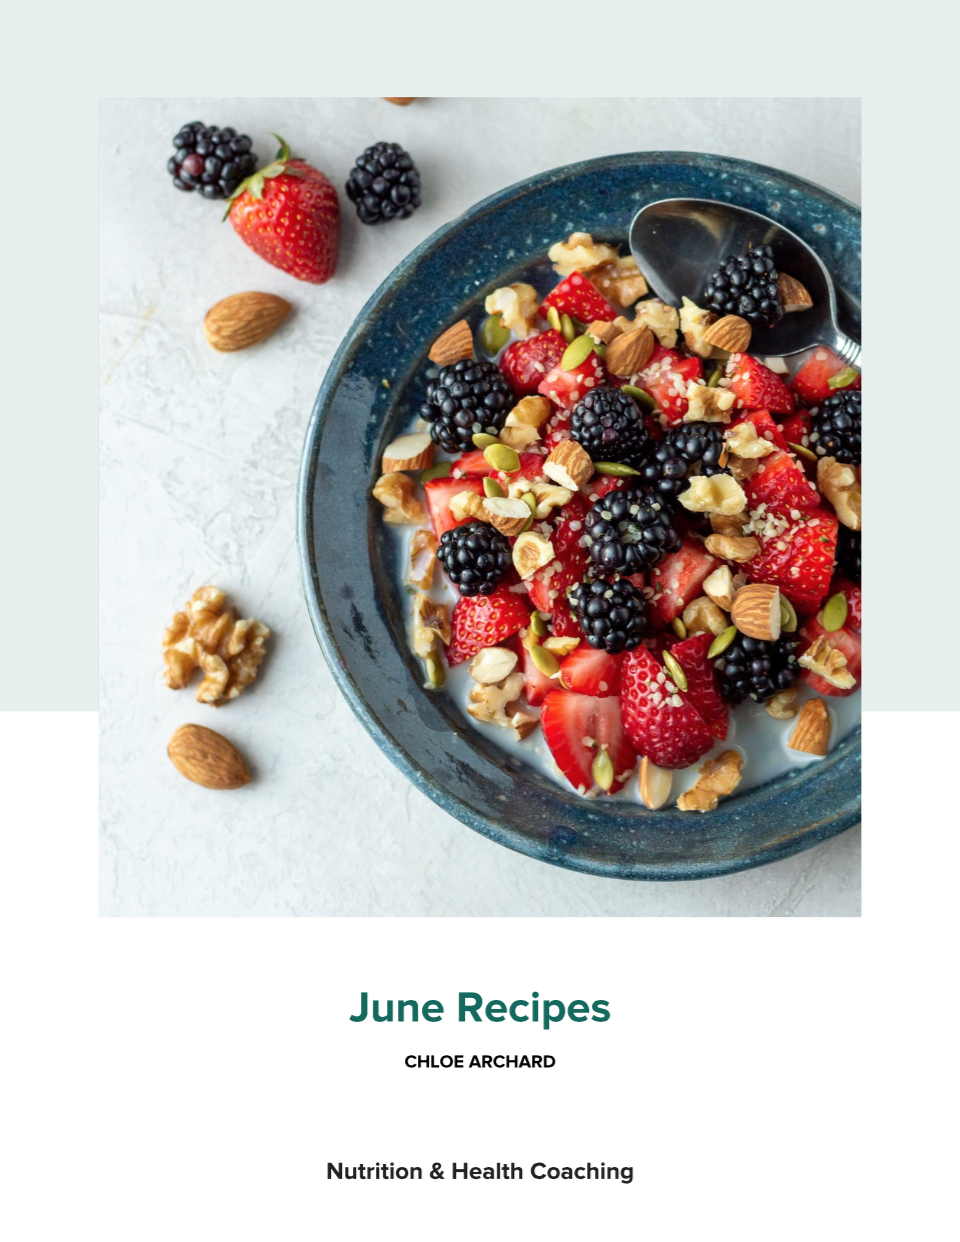 Day 25: Free Recipe Book for You, June 2021